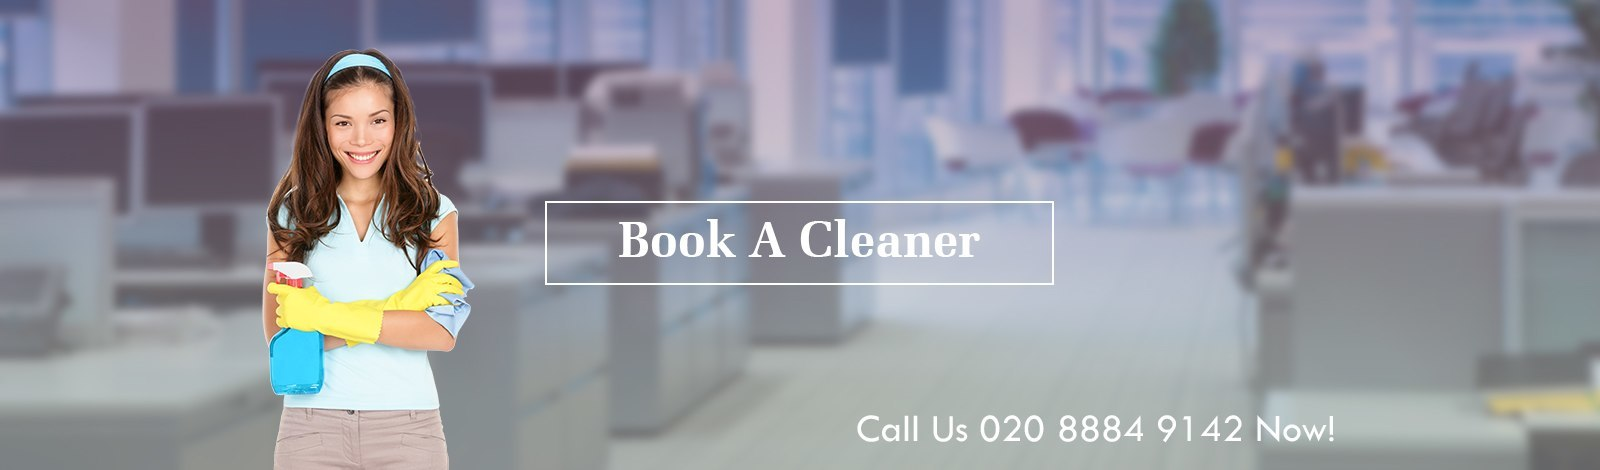 book-a-cleaner